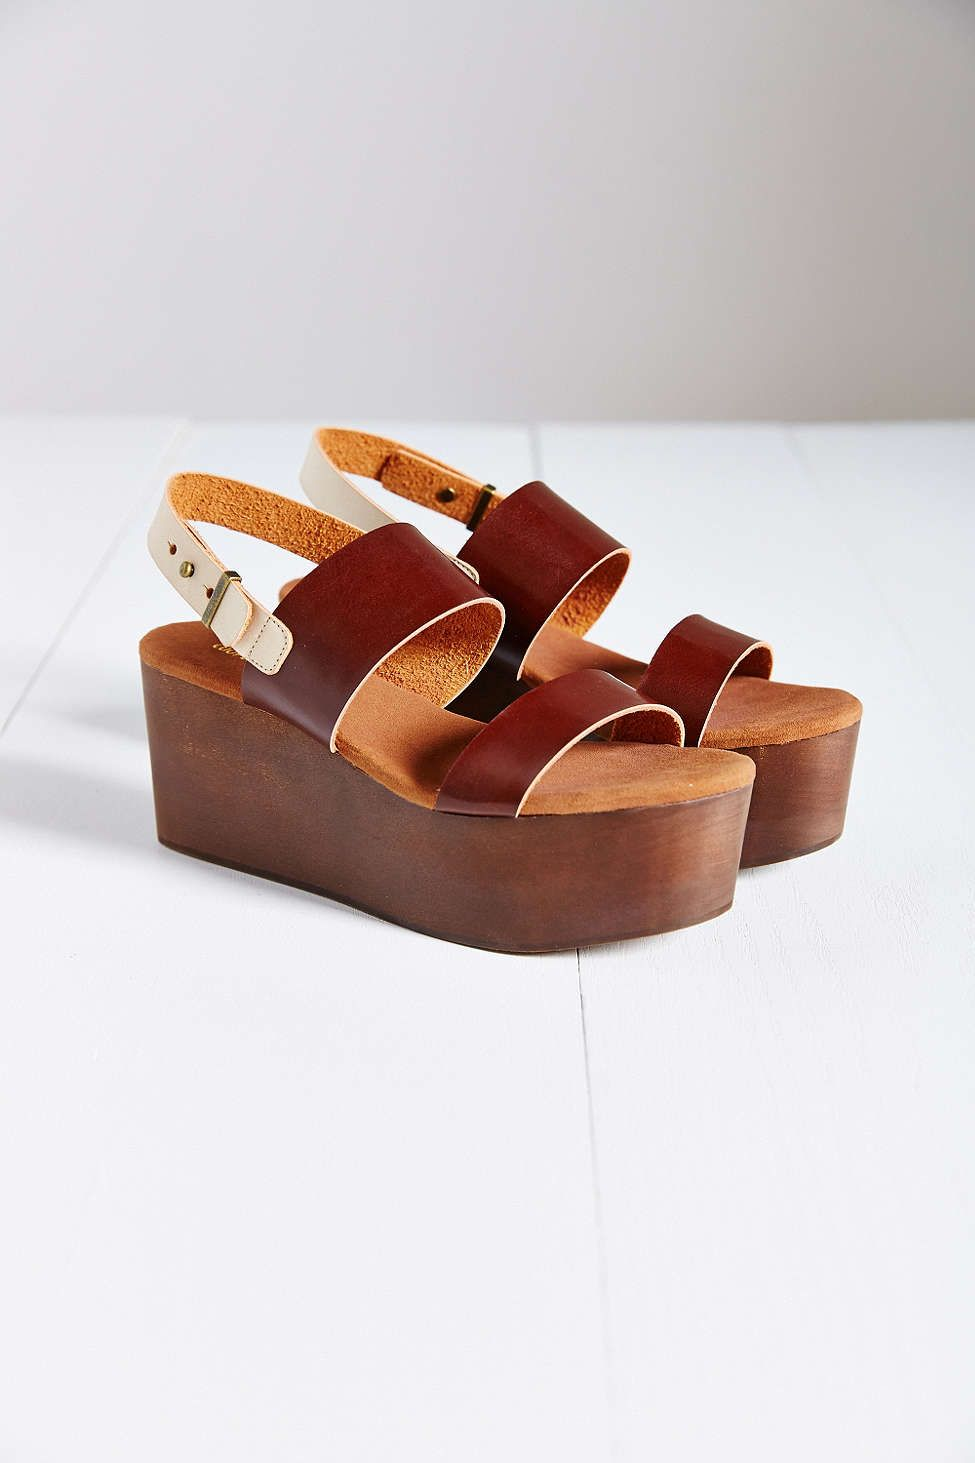 611928ace  Wedge Sandals  2018 Of The Best Wedge Sandals Summer Wedge Sandals